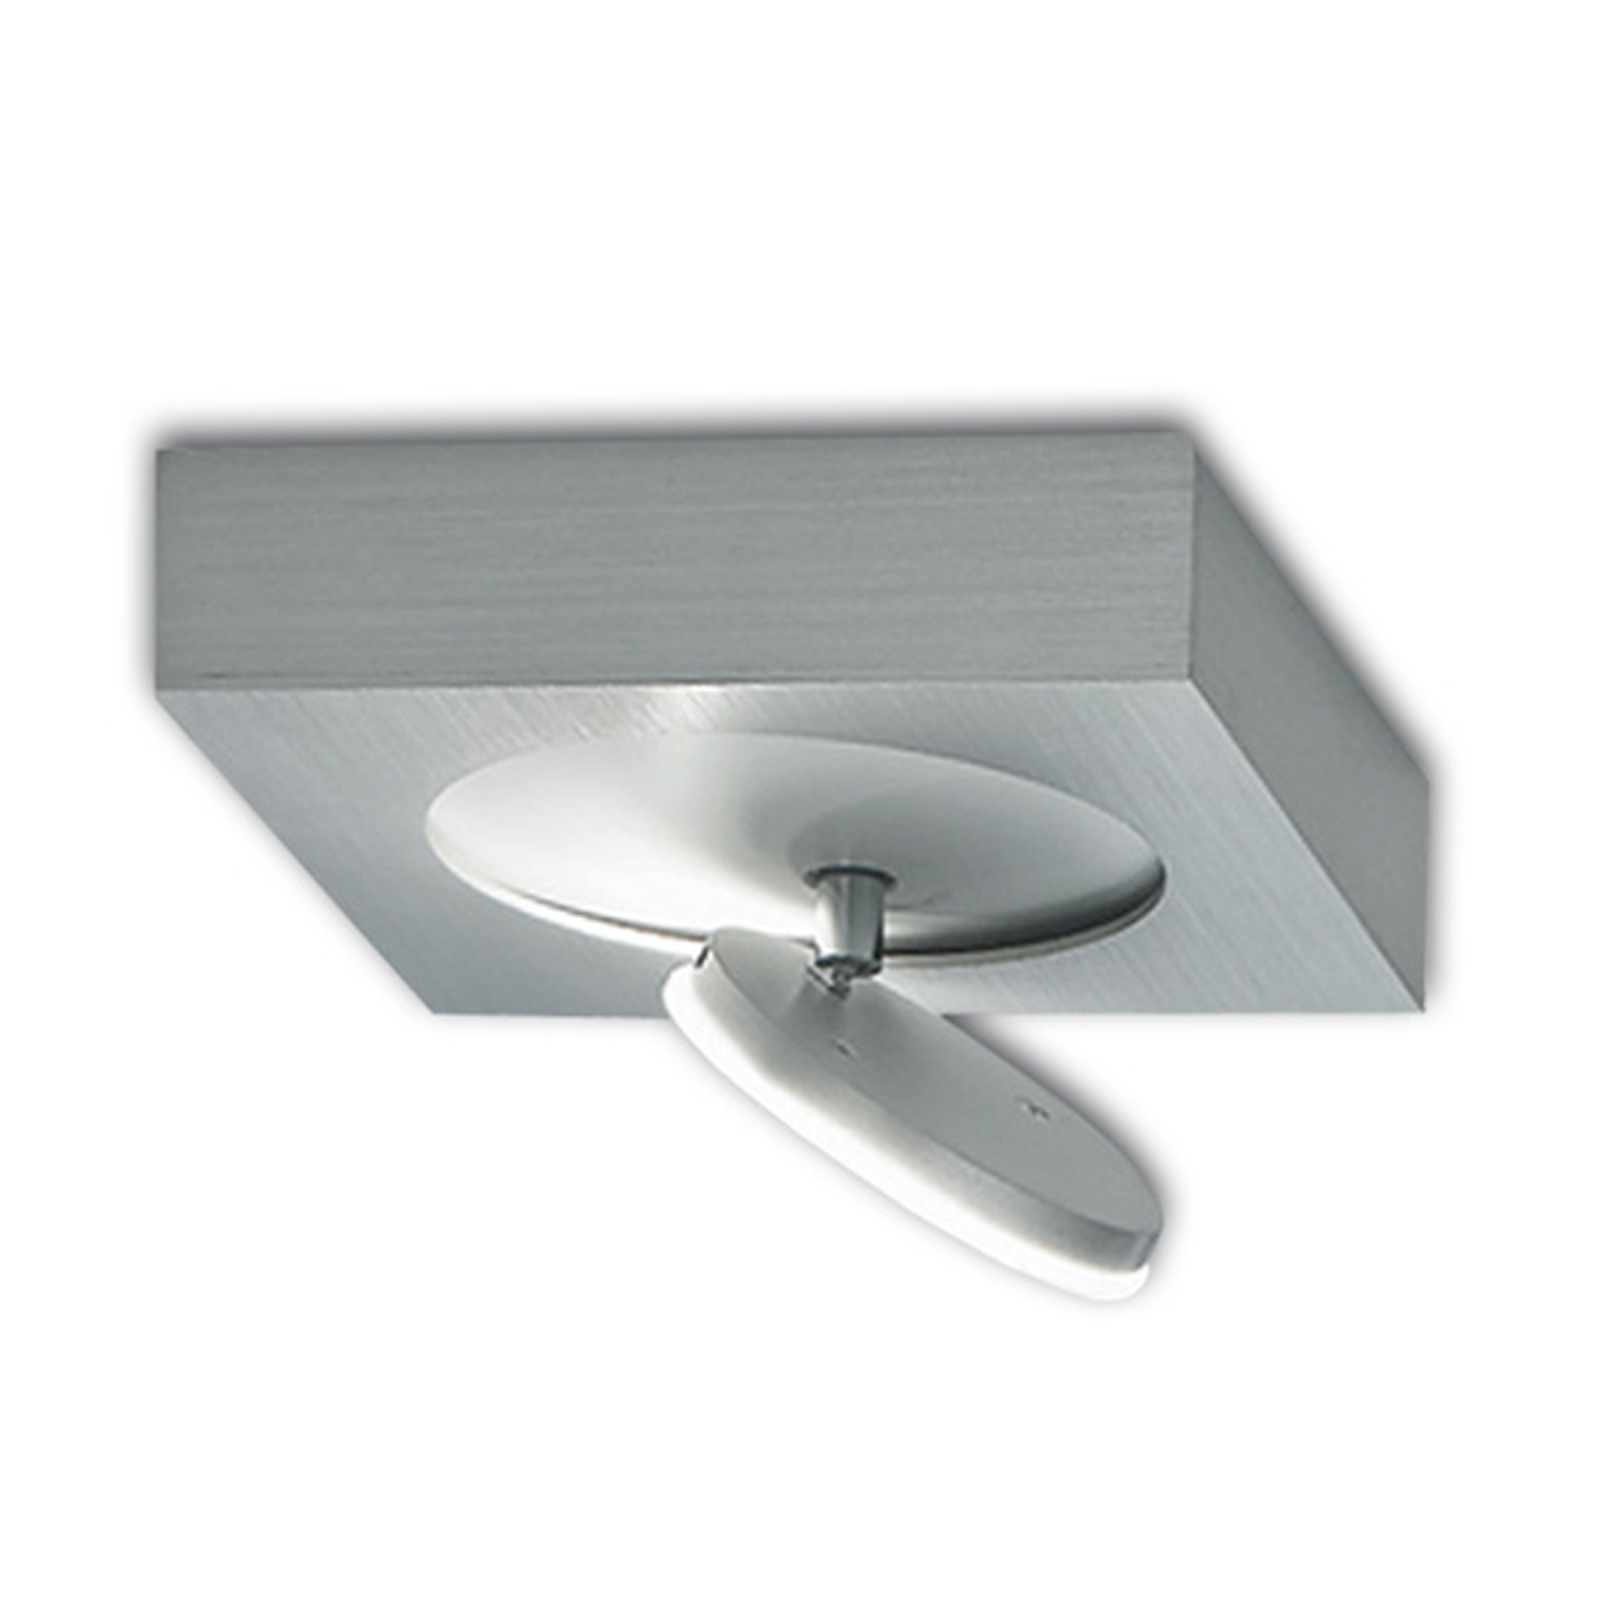 Ceiling light Spot It with LED_3051071_1